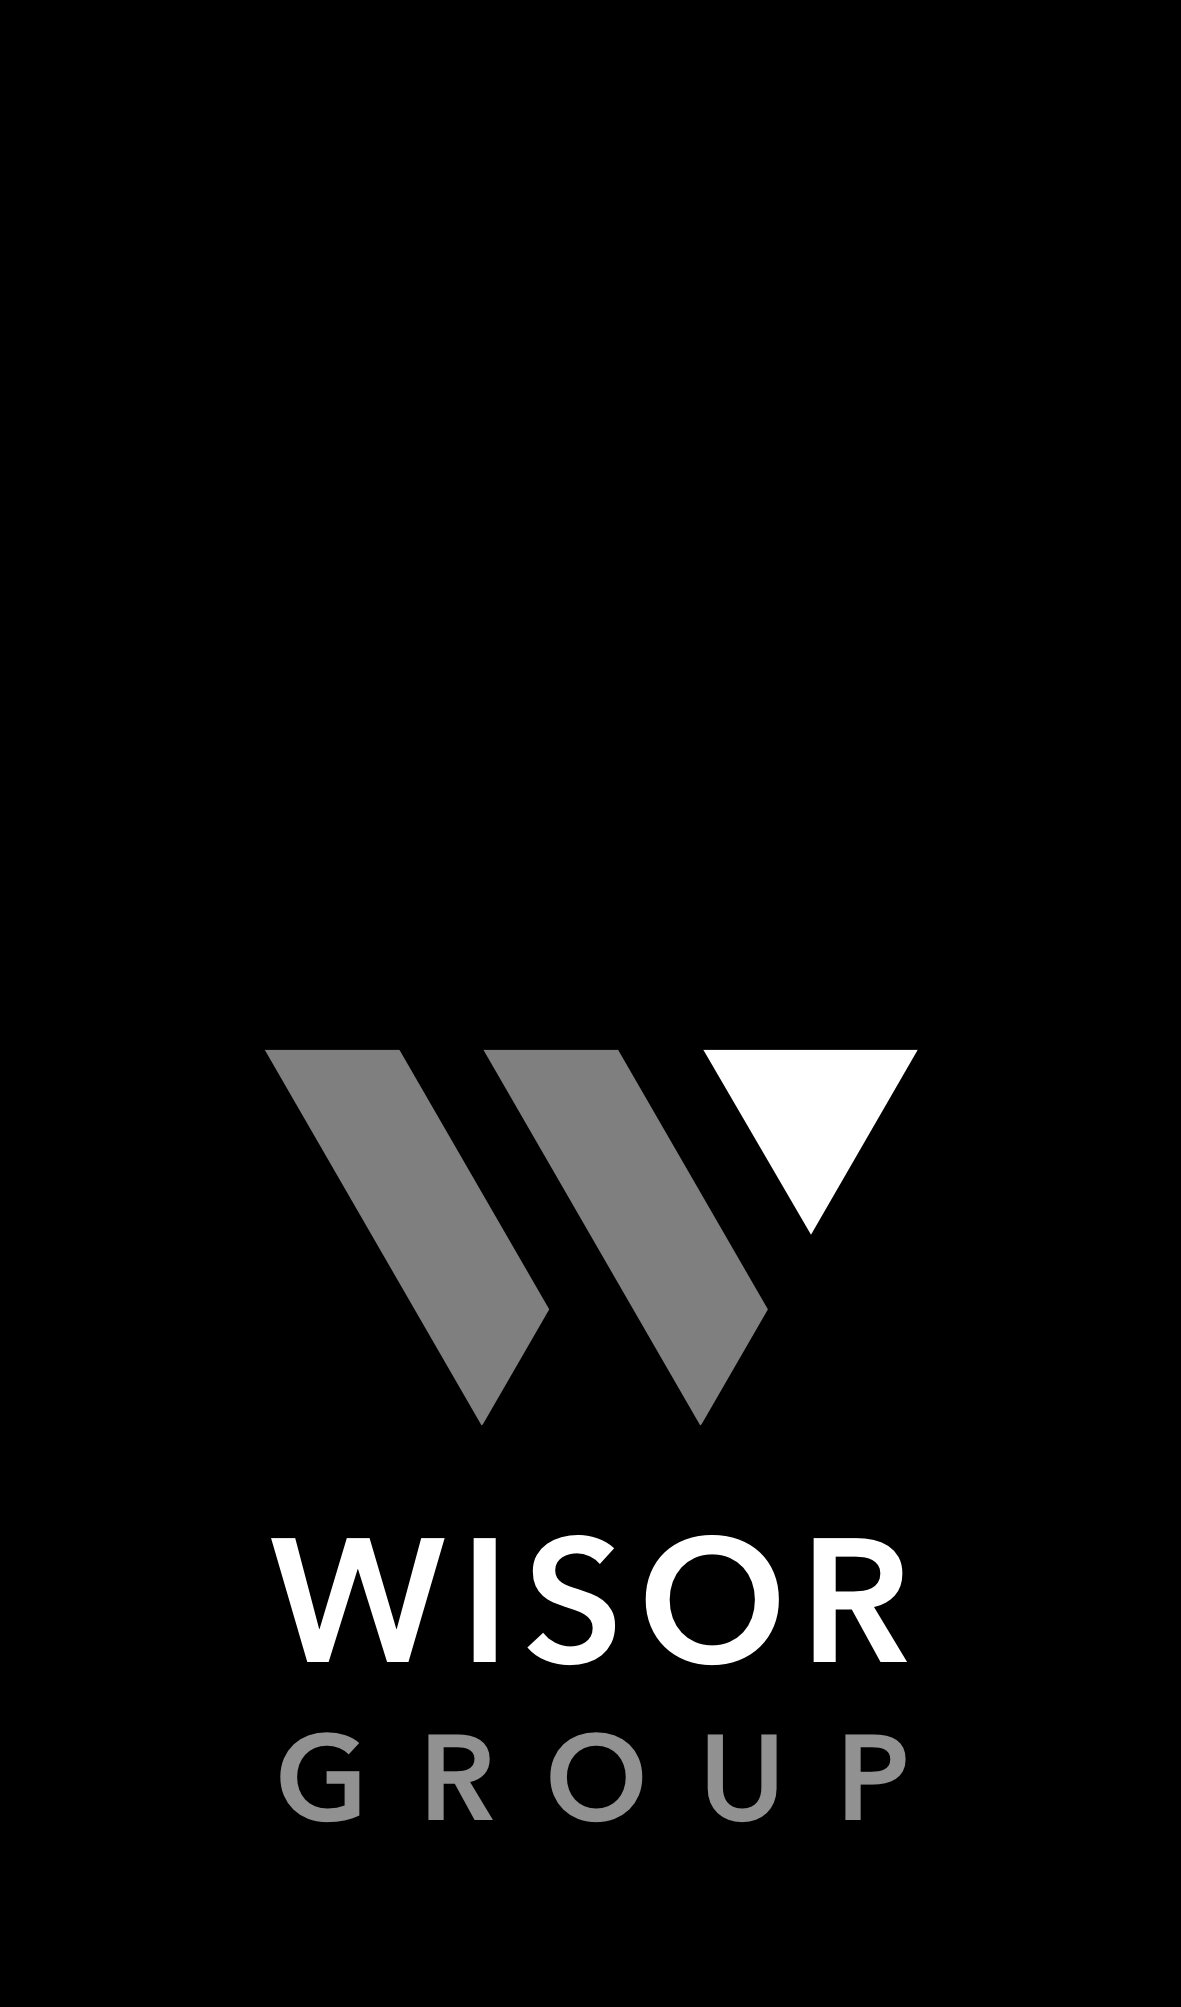 Wisor Group Document Logo.pdf  For download click on image.